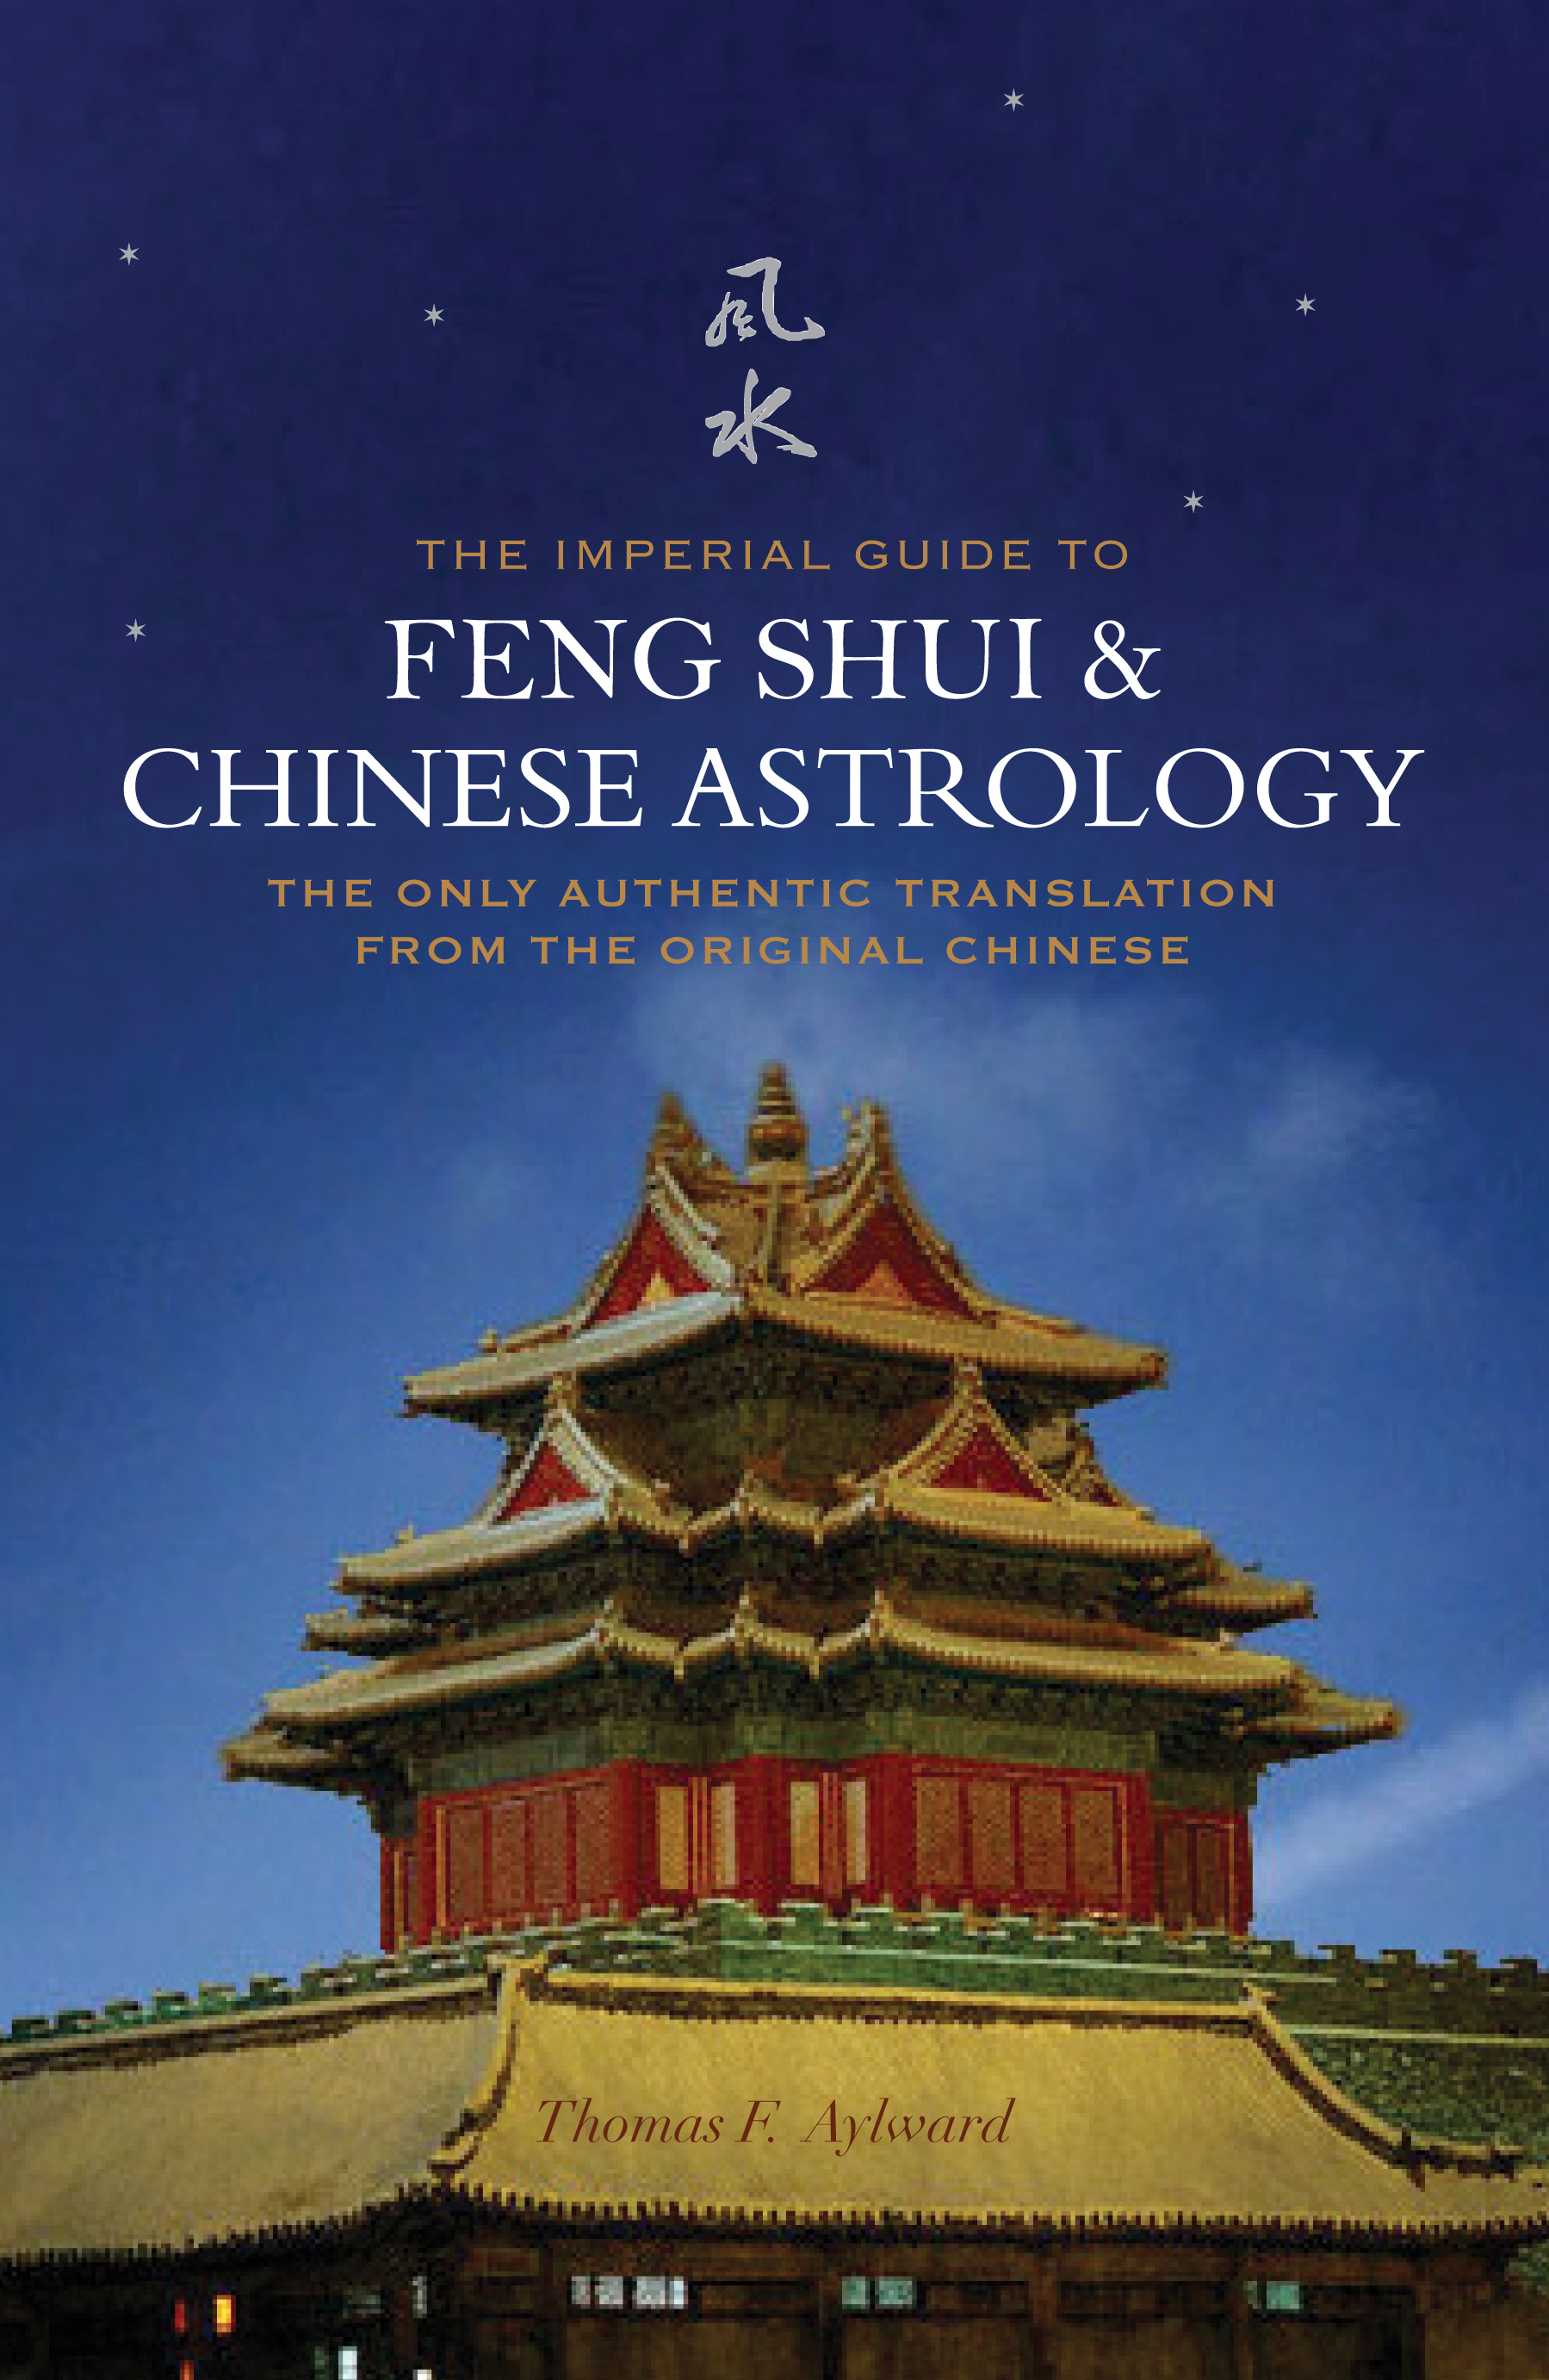 The Imperial Guide to Feng-Shui & Chinese Astrology - The Only Authentic Translation from the Original Chinese